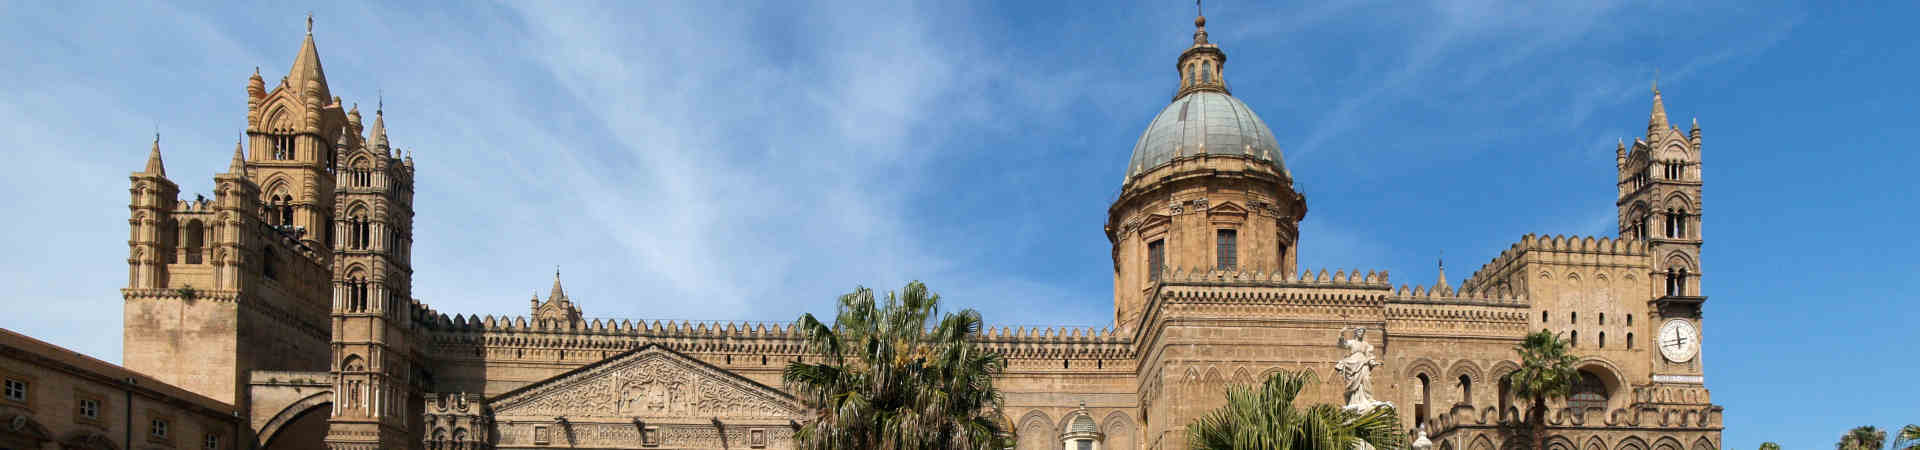 Resource image of the destination port Palermo for the ferry route Naples - Palermo